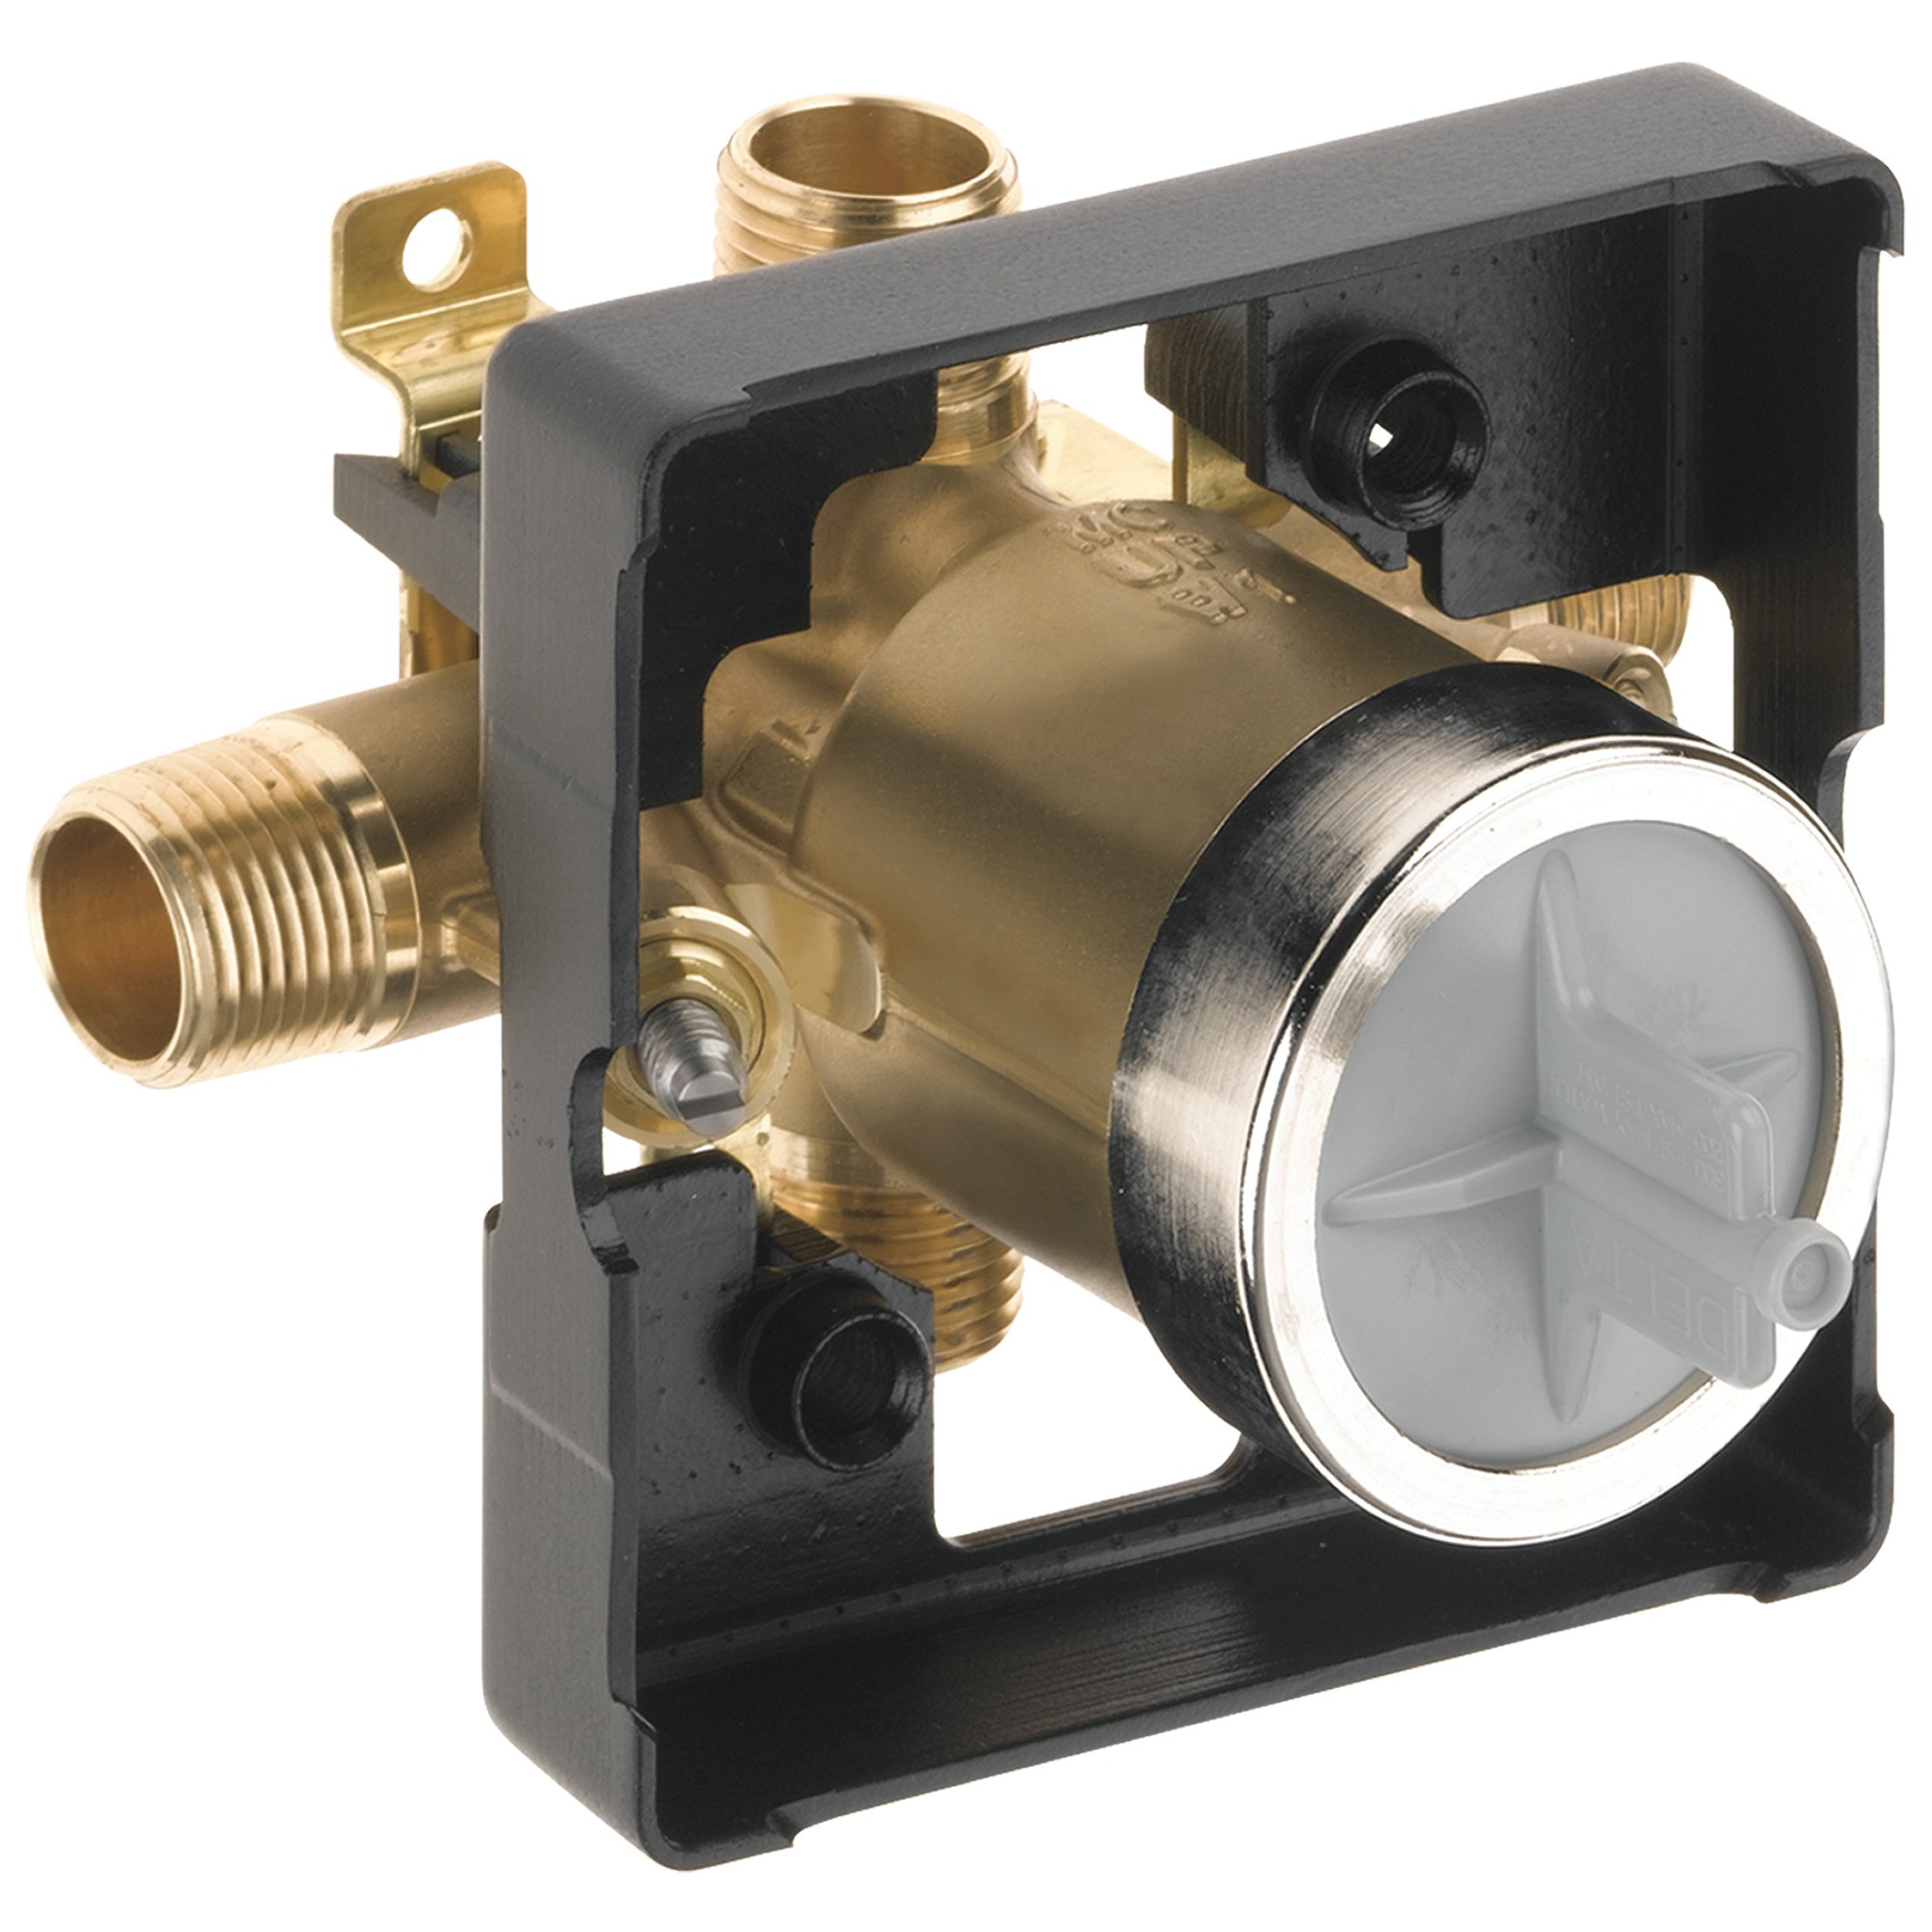 DELTA® R10000-UNWS Universal Tub and Shower Rough-In Valve Body, Forged Brass Body, Domestic